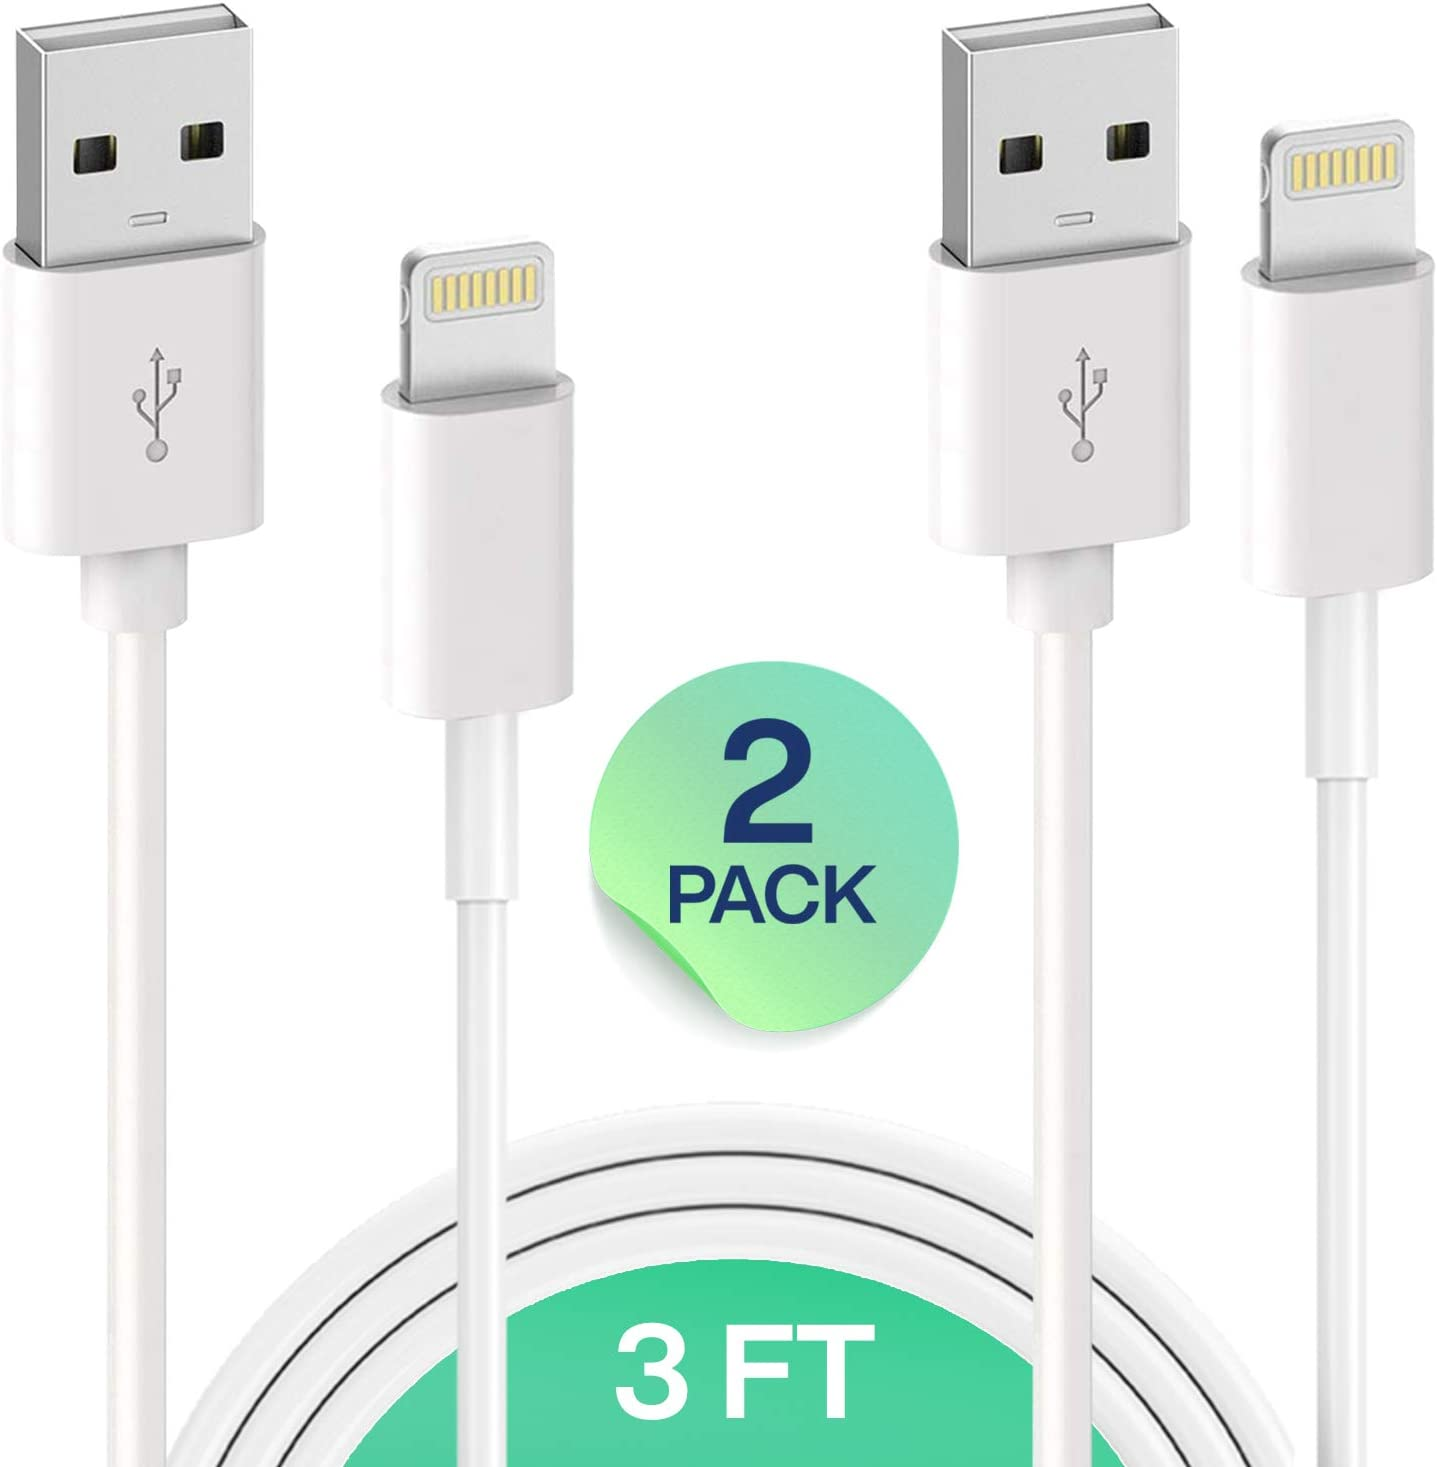 MFI Certified 2 Pack 3FT USB Cable iPhone Charging Cable Charging Cord Compatible with iPhone 11,Pro,Pro Max,Xs,Xs Max,XR,X,8,8 Plus,7,7 Plus,6S,6S Plus,iPad Air,Mini//iPod Touch//Case Truwire